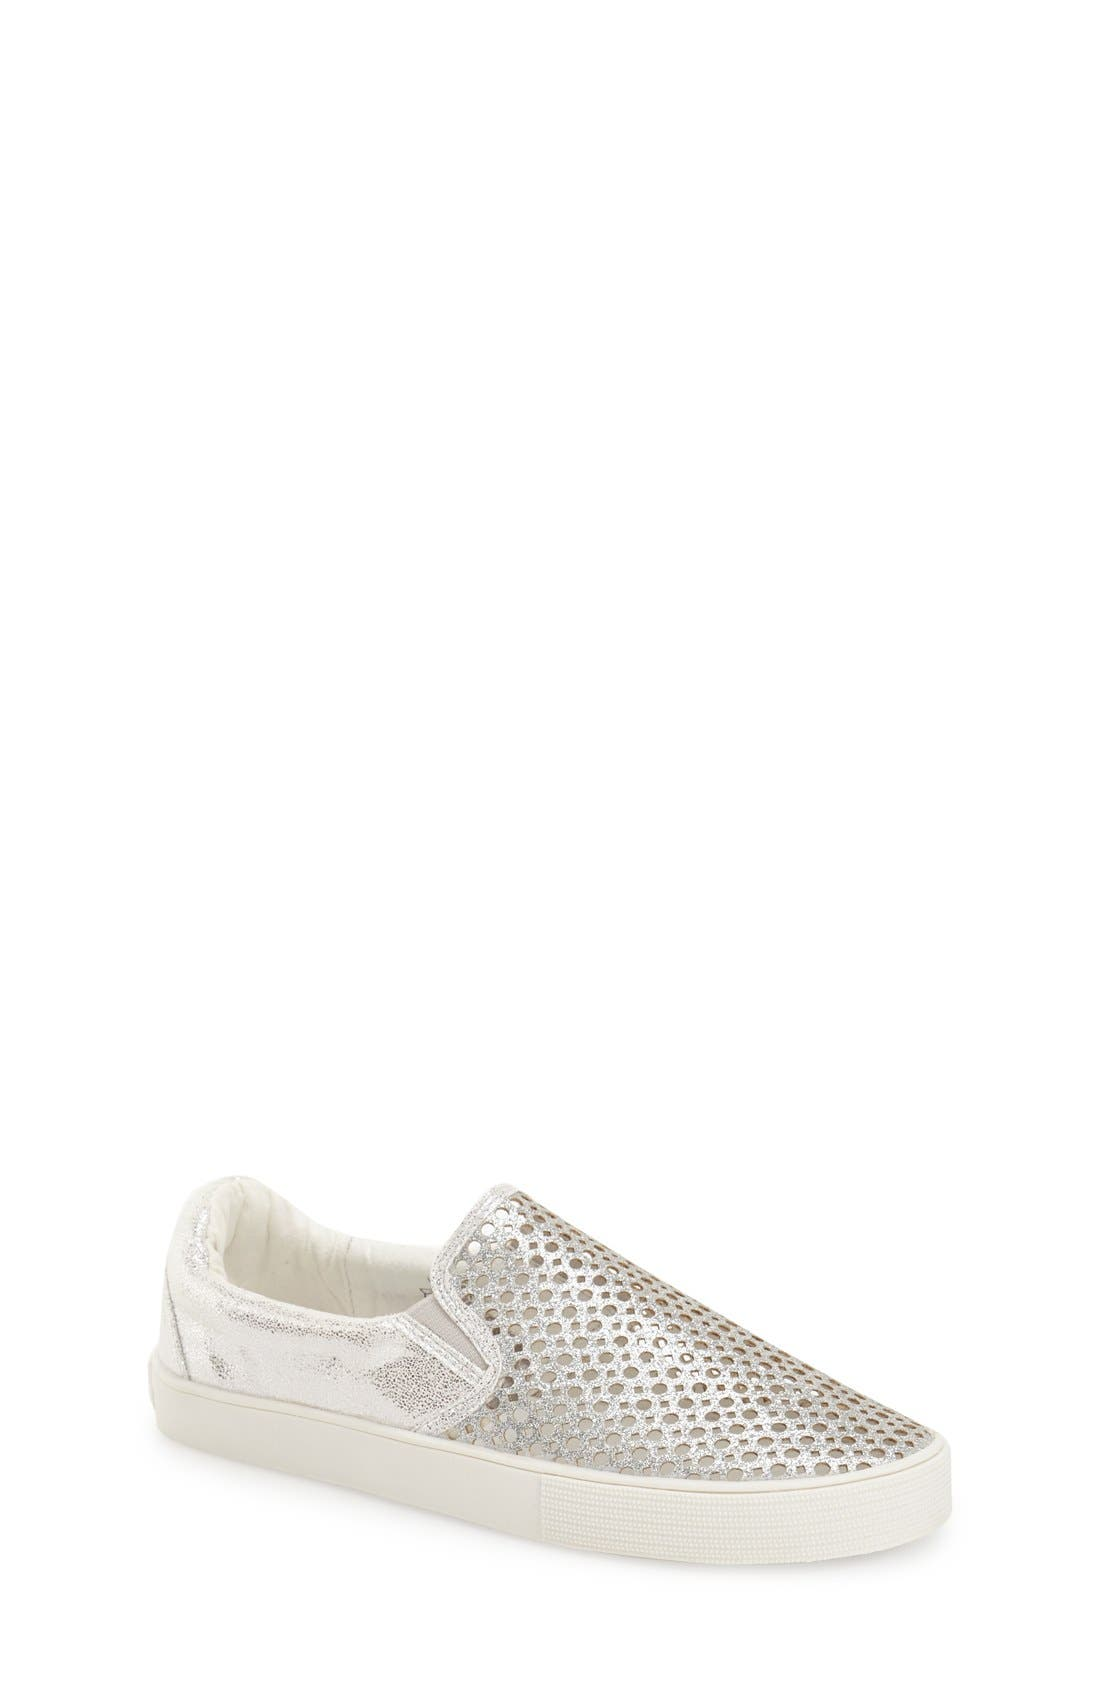 Stuart Weitzman 'Vance' Slip-On Sneaker (Little Kid & Big Kid) (Online Only)